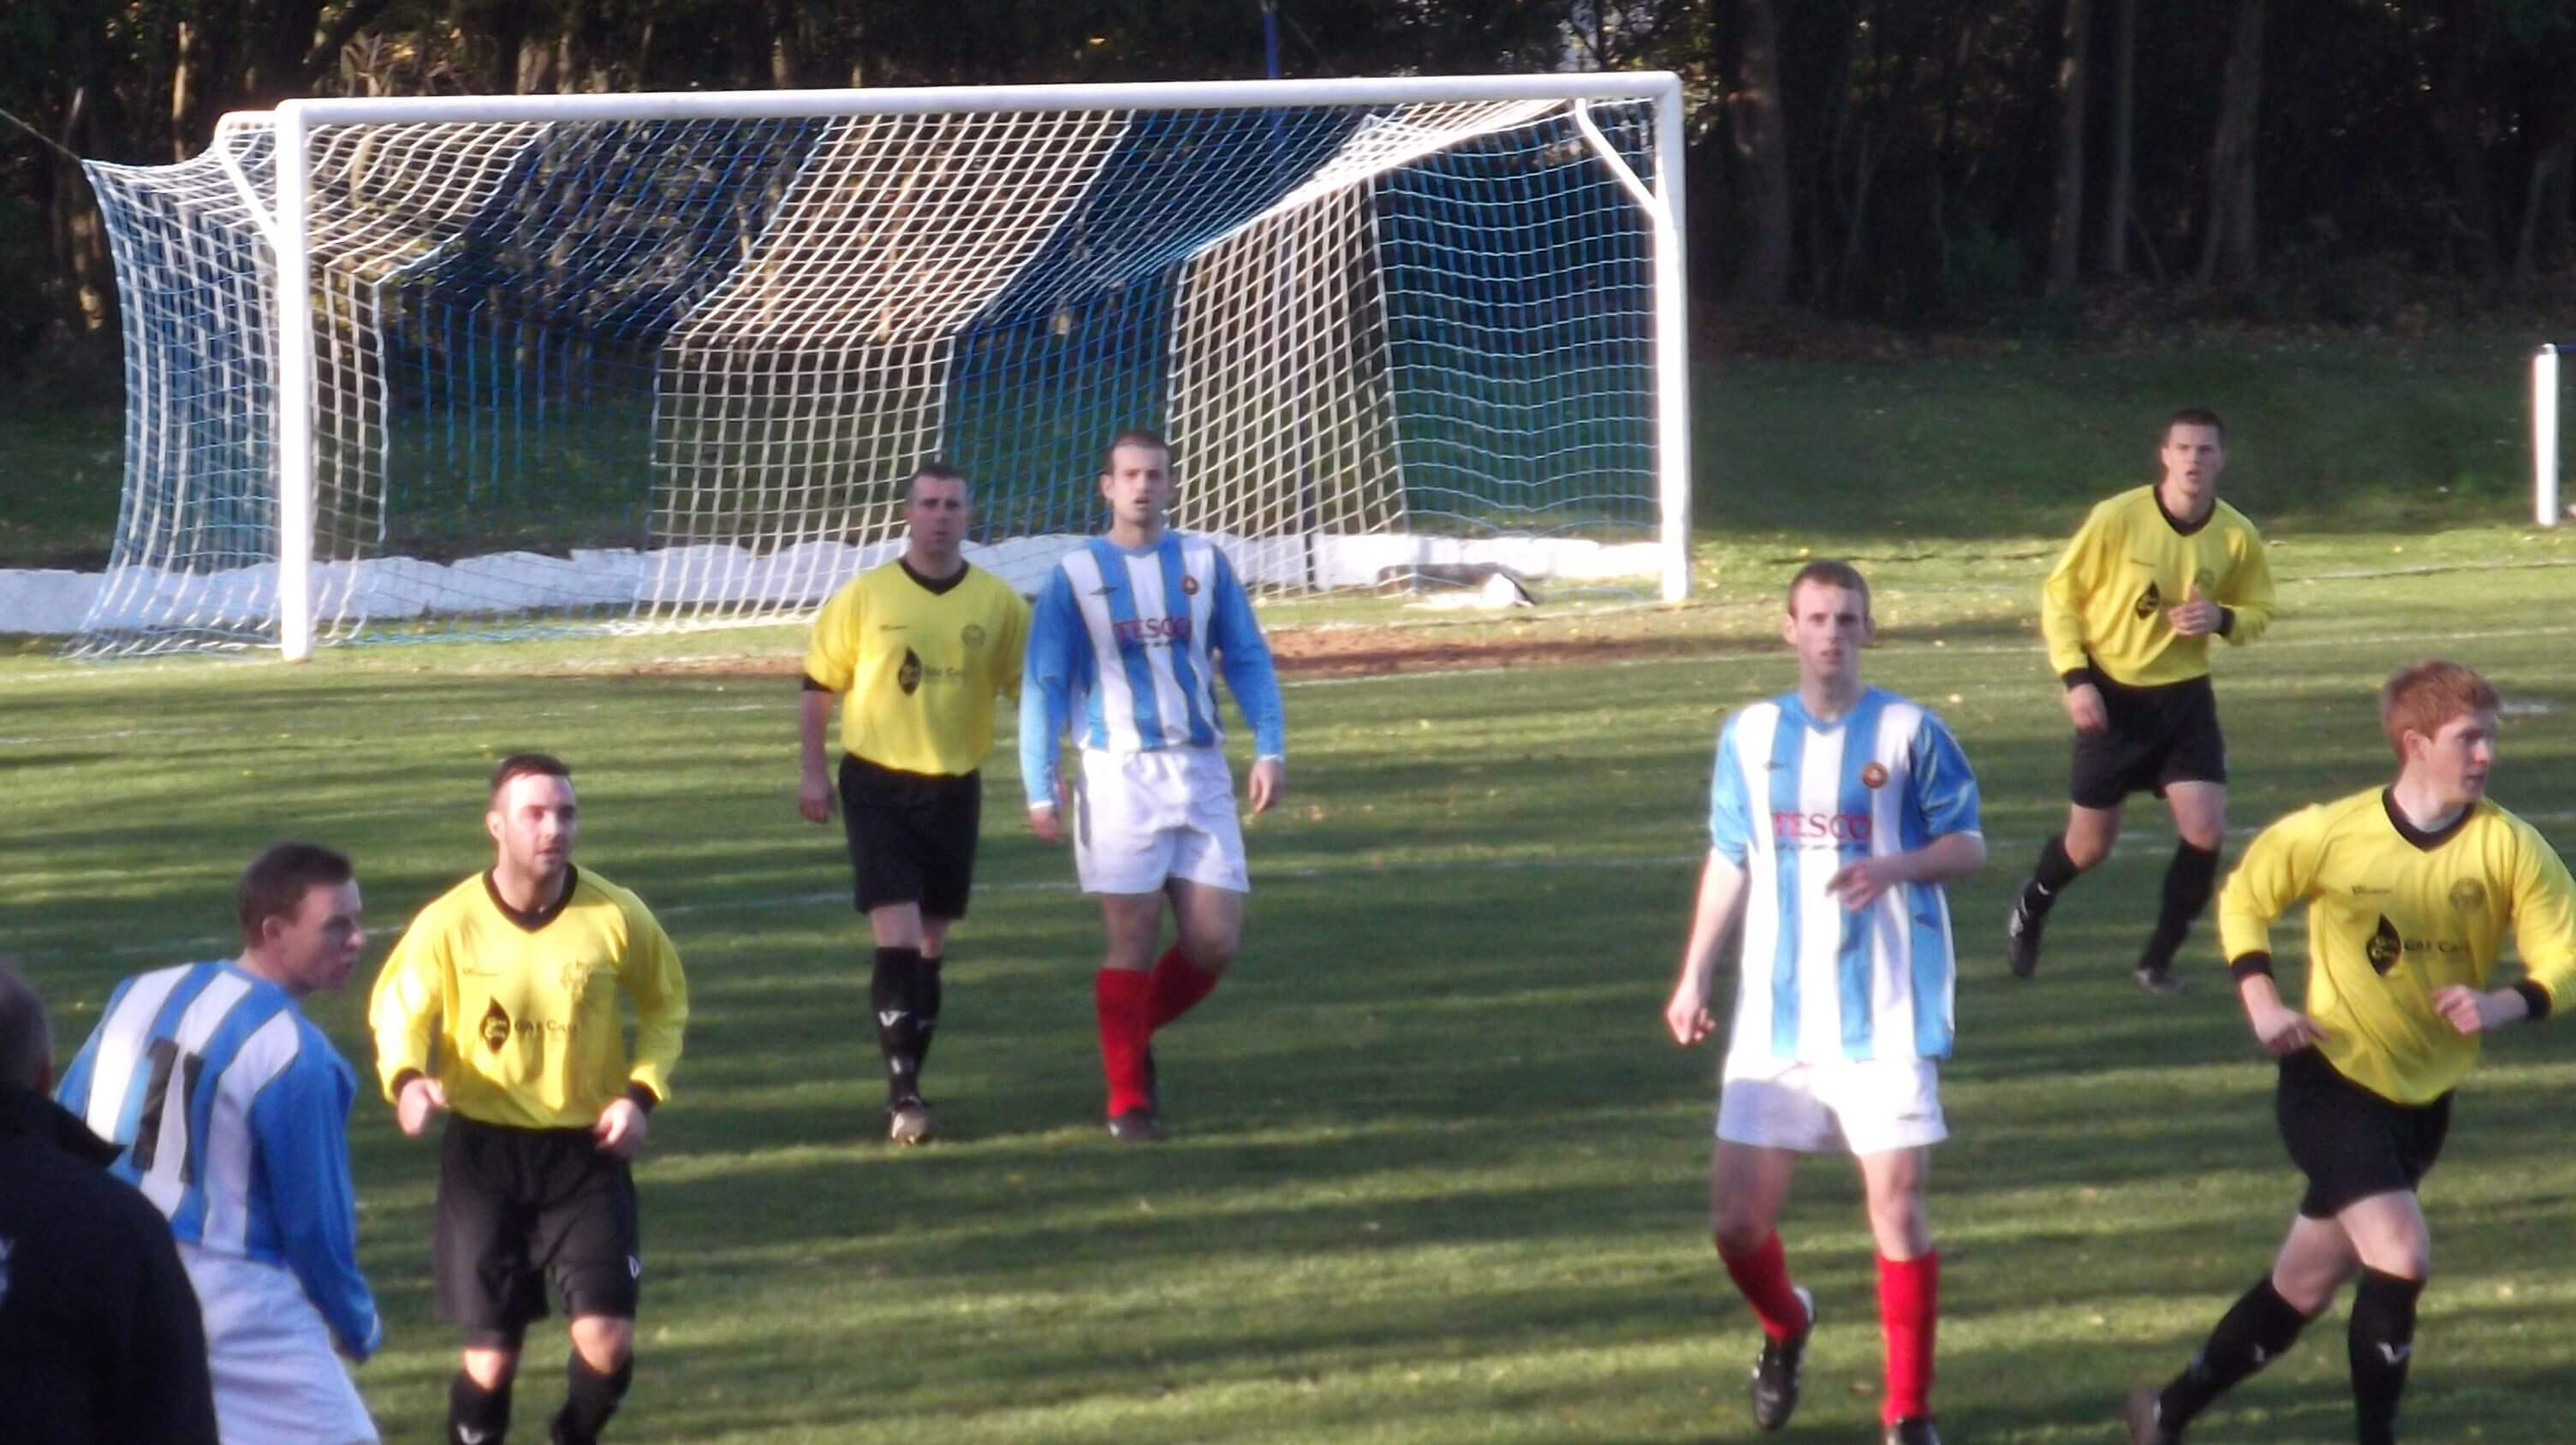 Bellshill v Larkhall Thistle first half action